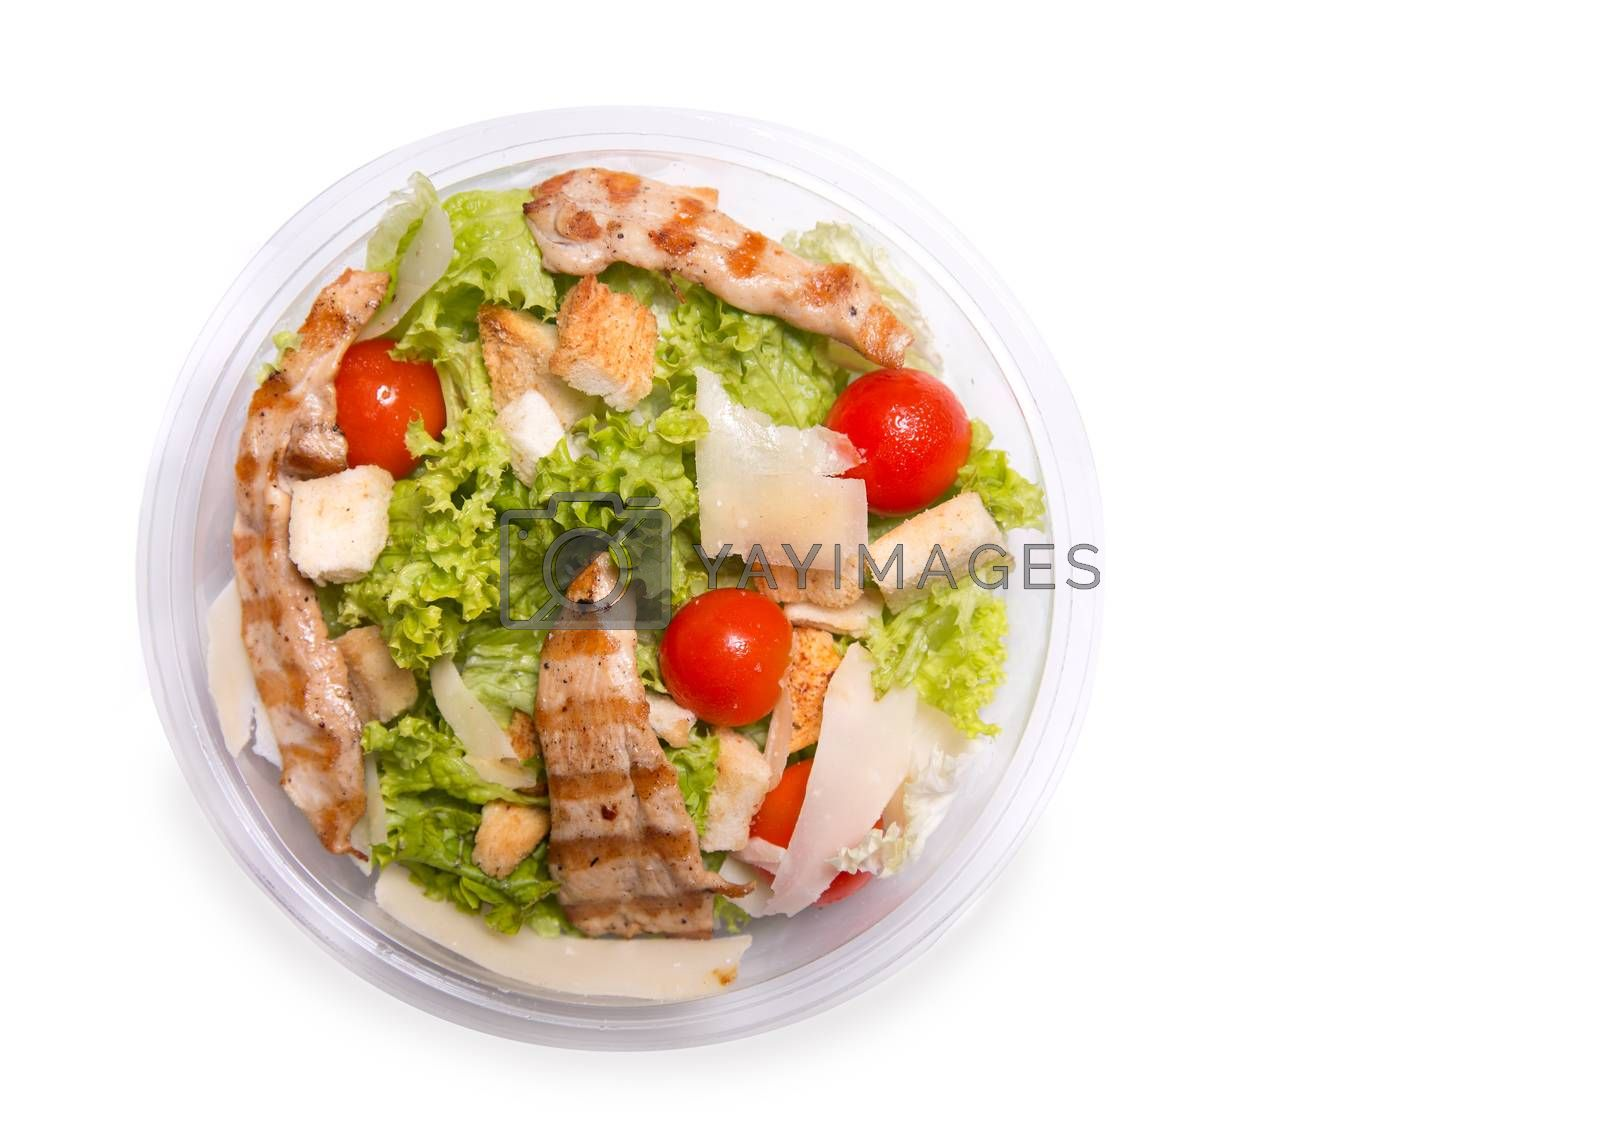 Caesar salad with grilled chicken meat, top view isolated on white background